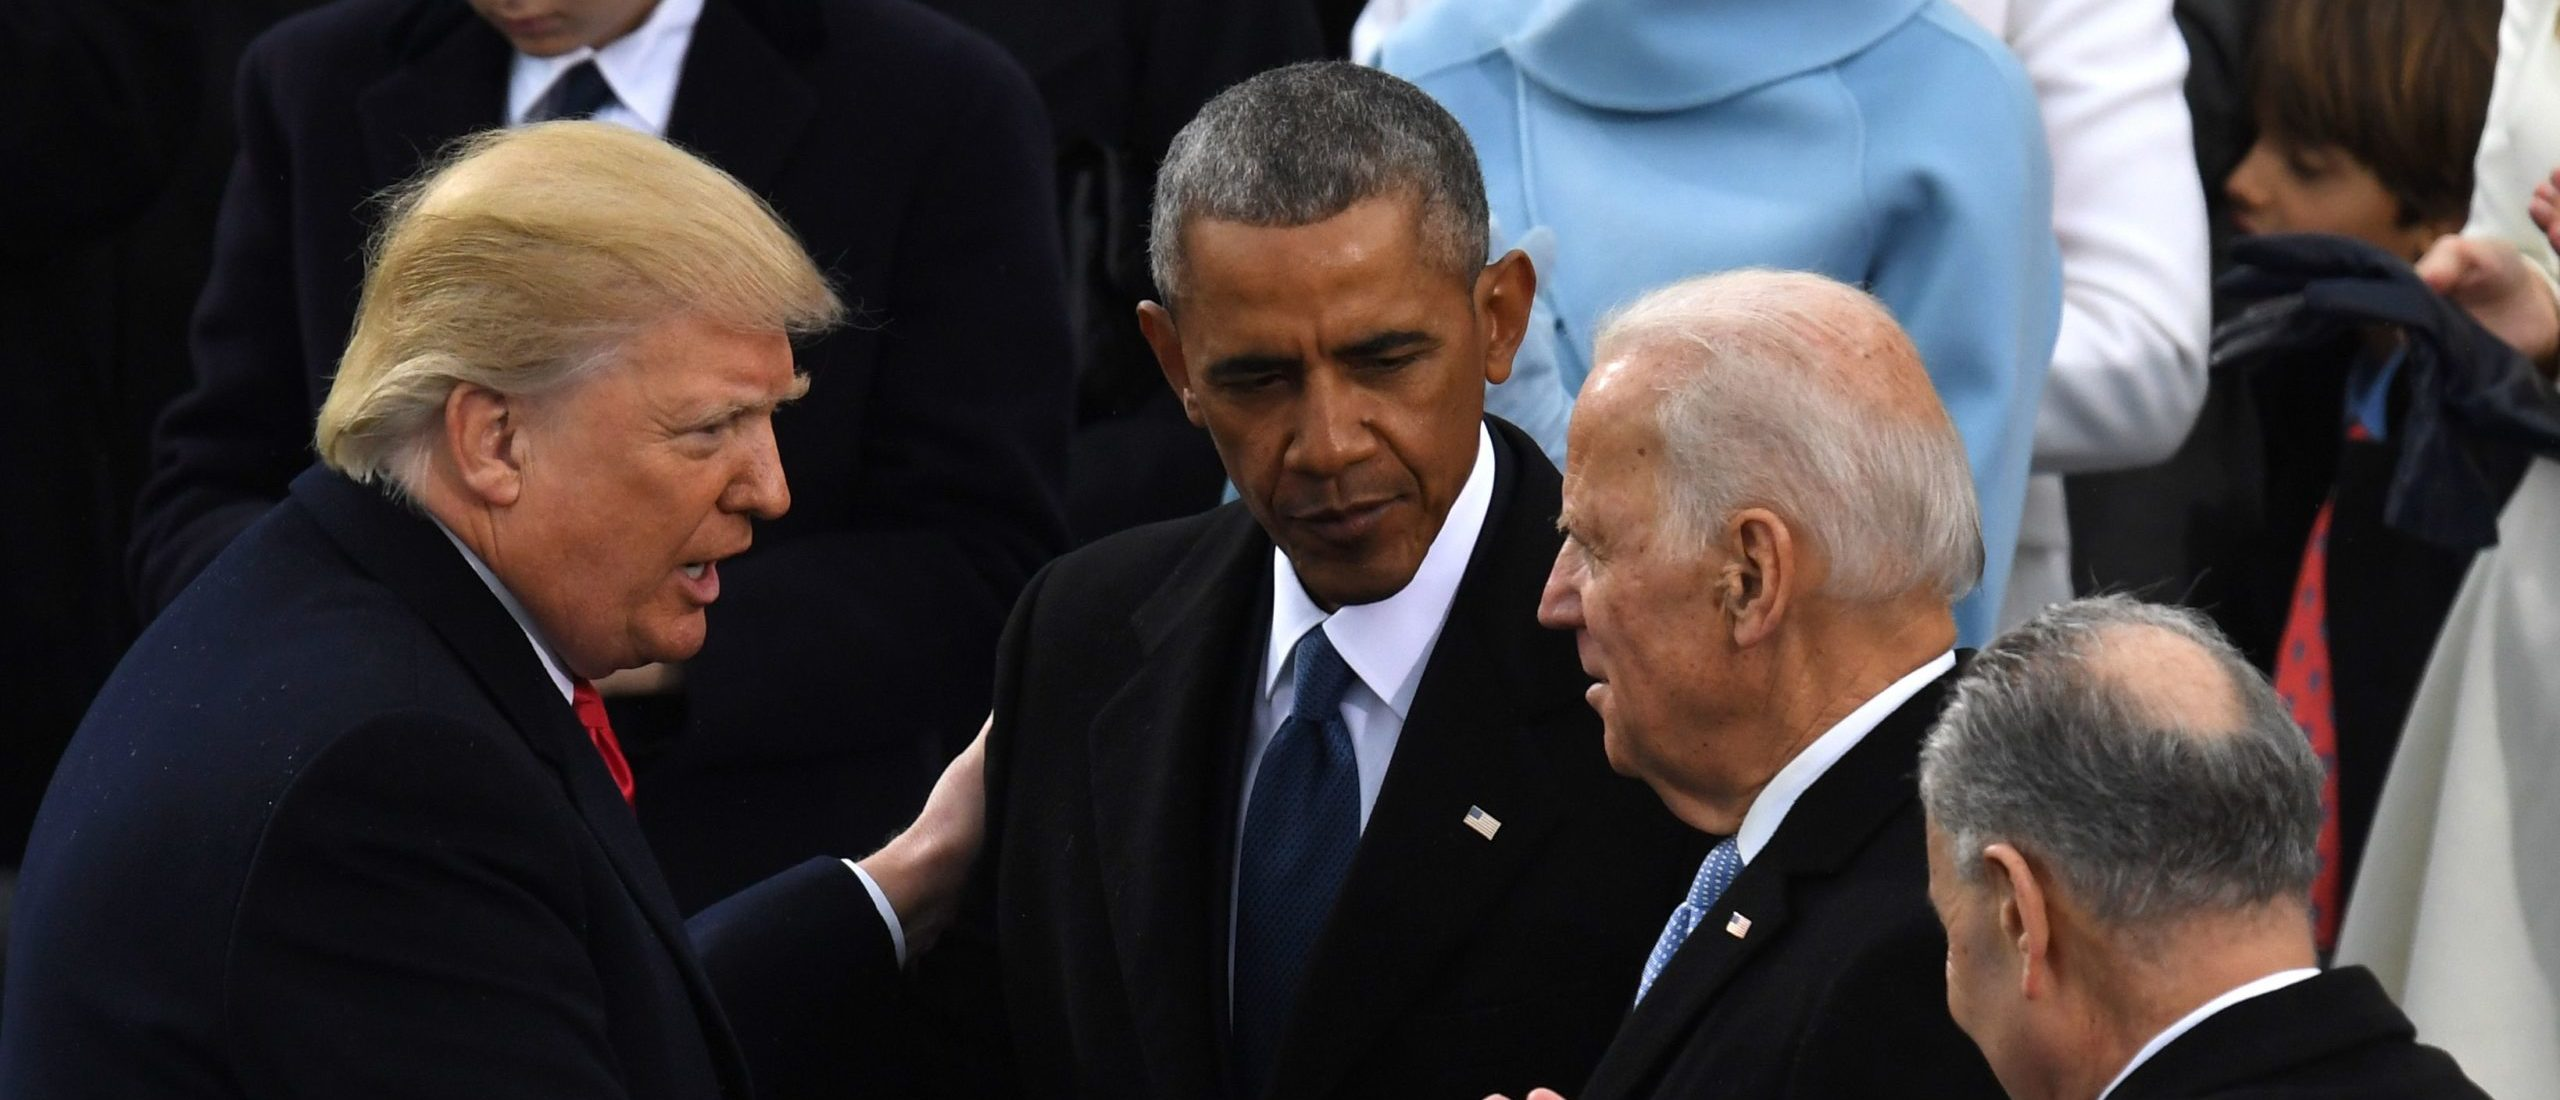 US President Donald Trump (L) shakes hands with former US President Barack Obama (C) and former vice-President Joe Biden after being sworn in as President on January 20, 2017 at the US Capitol in Washington, DC. (MARK RALSTON/AFP via Getty Images)